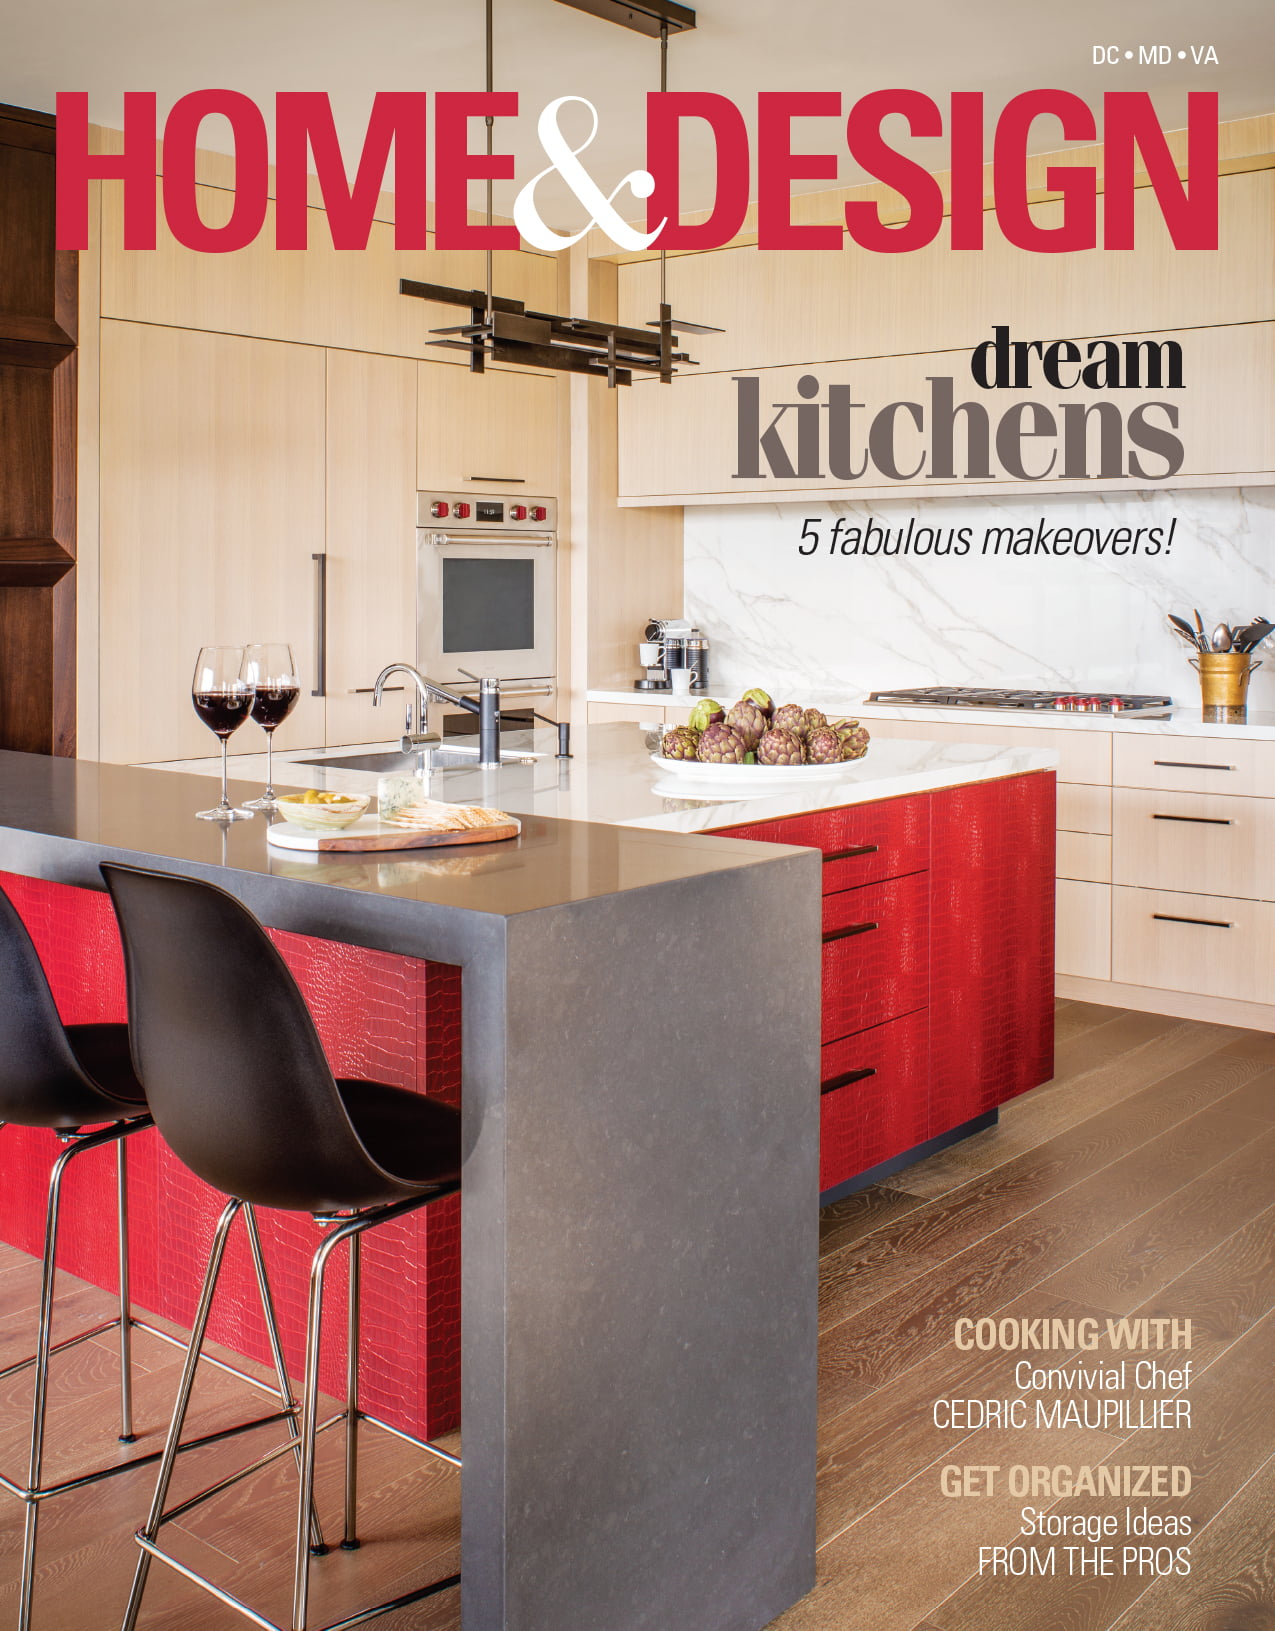 January/February 2018 Archives - Home & Design Magazine